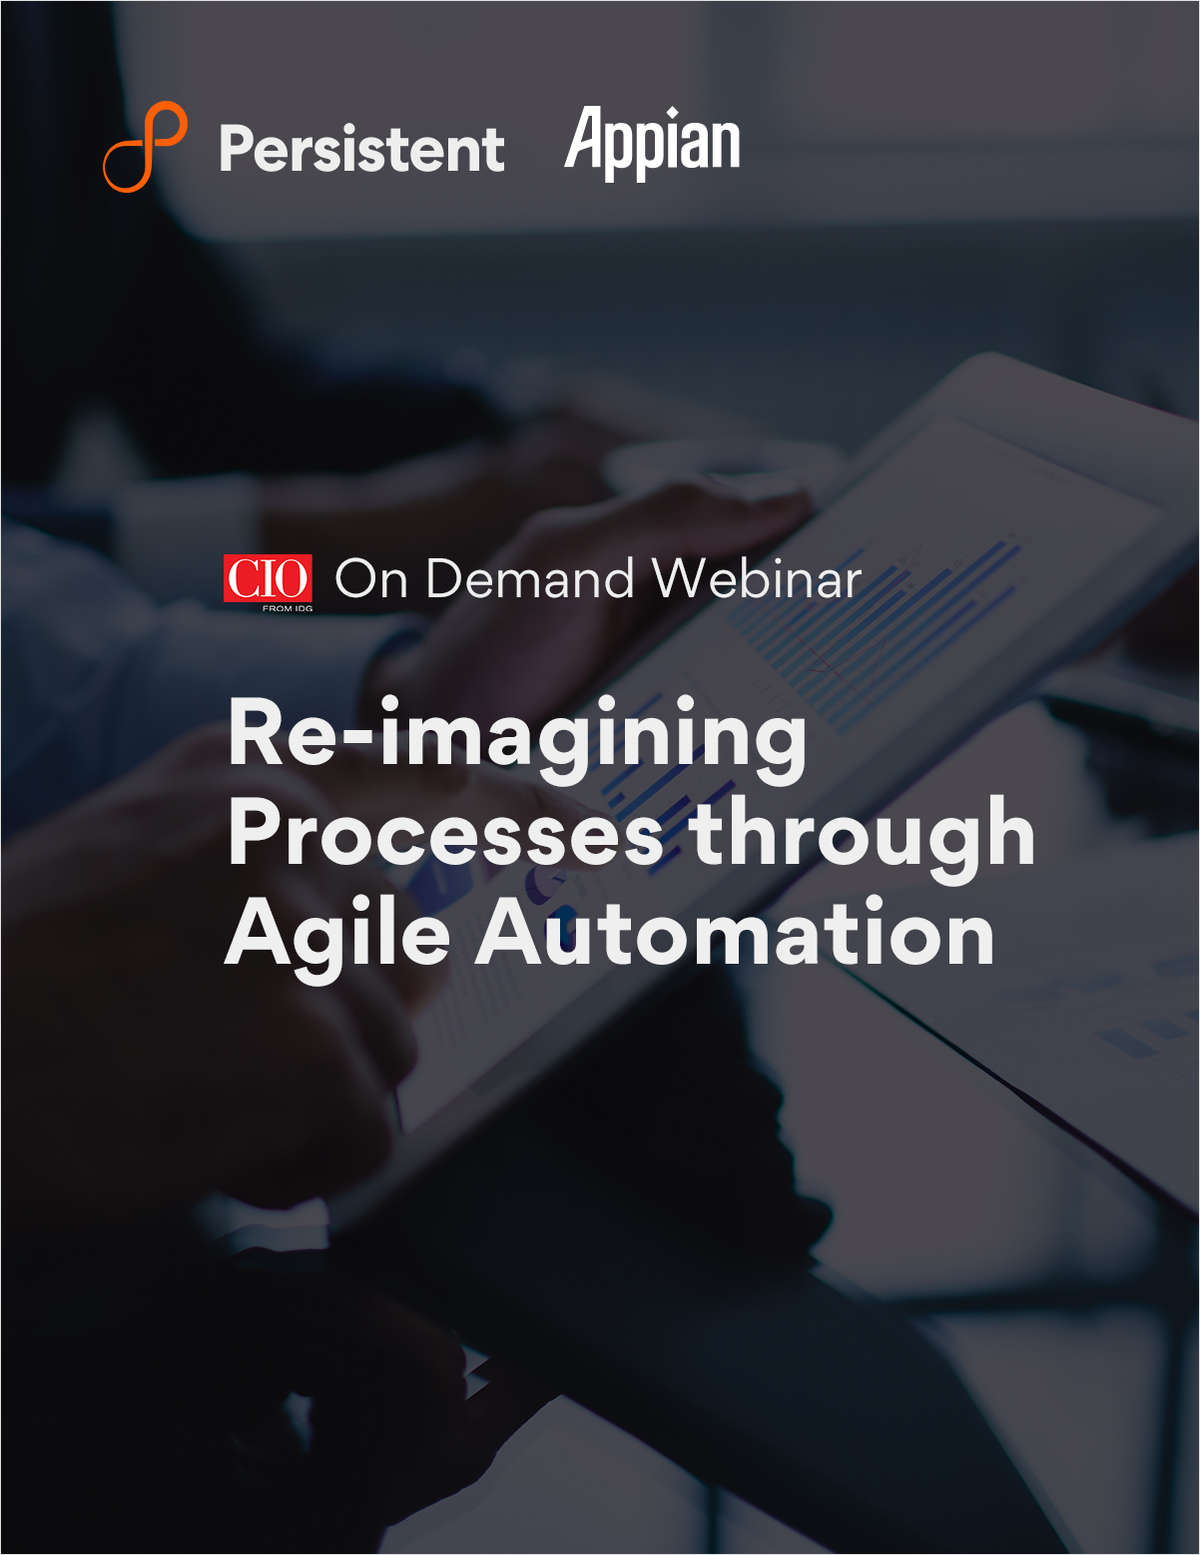 Re-imagining Processes through Agile Automation